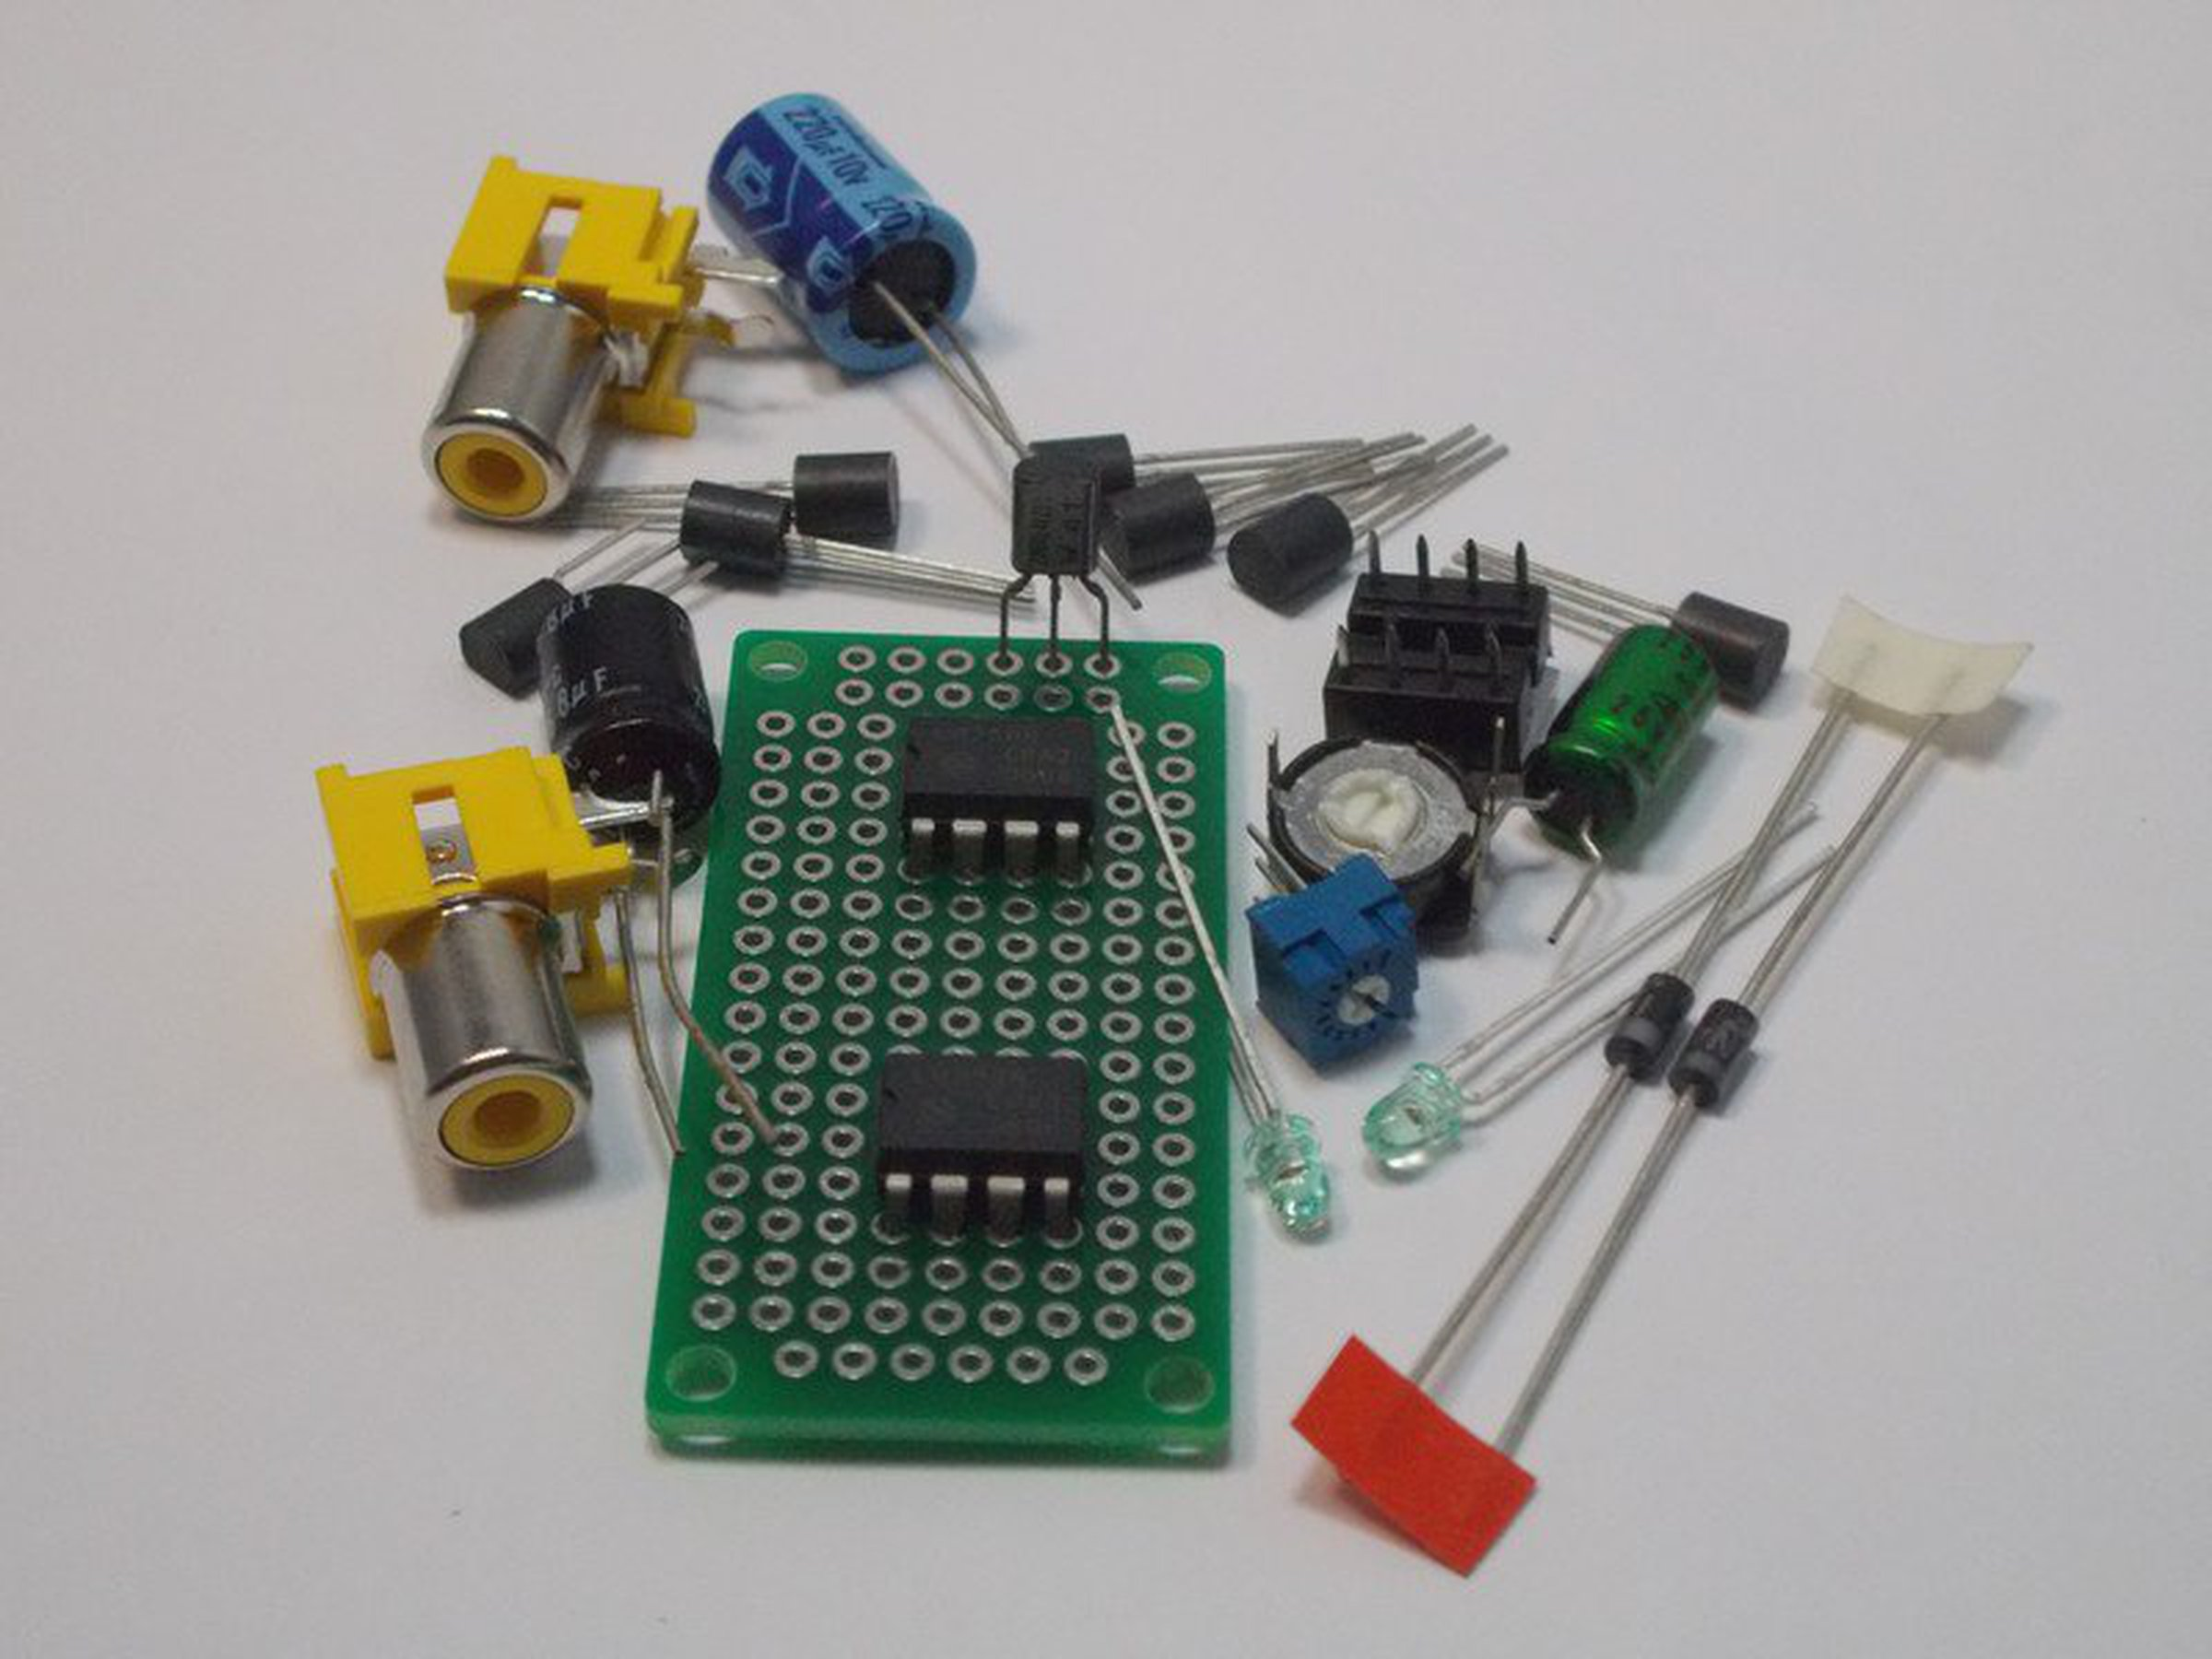 Lm311 Voltage Comparator Design Kit 1365 From Nightfire Datasheet 1